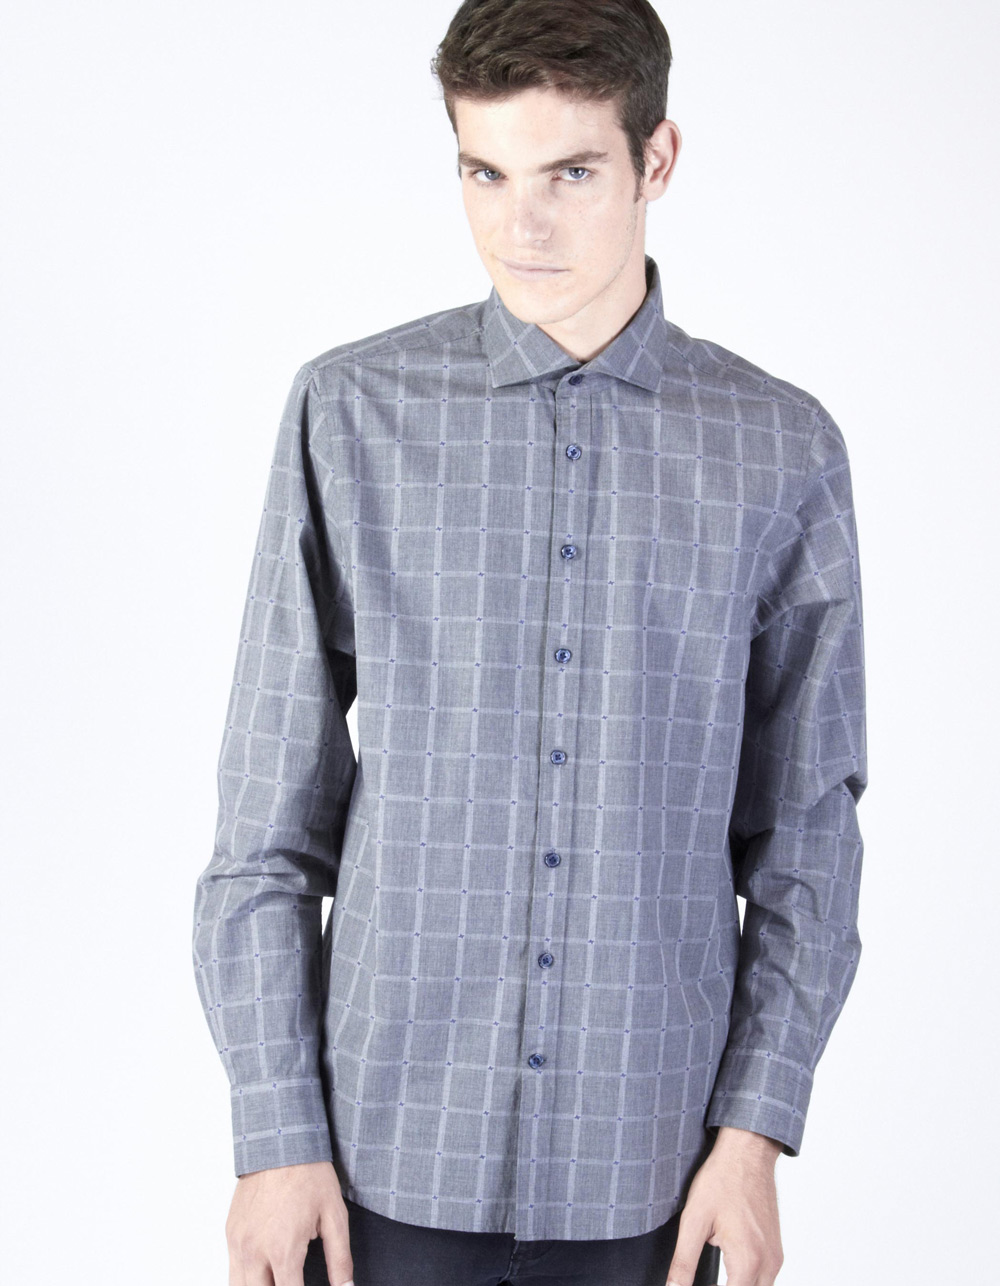 Grey with blue micro-pattern plaid shirt